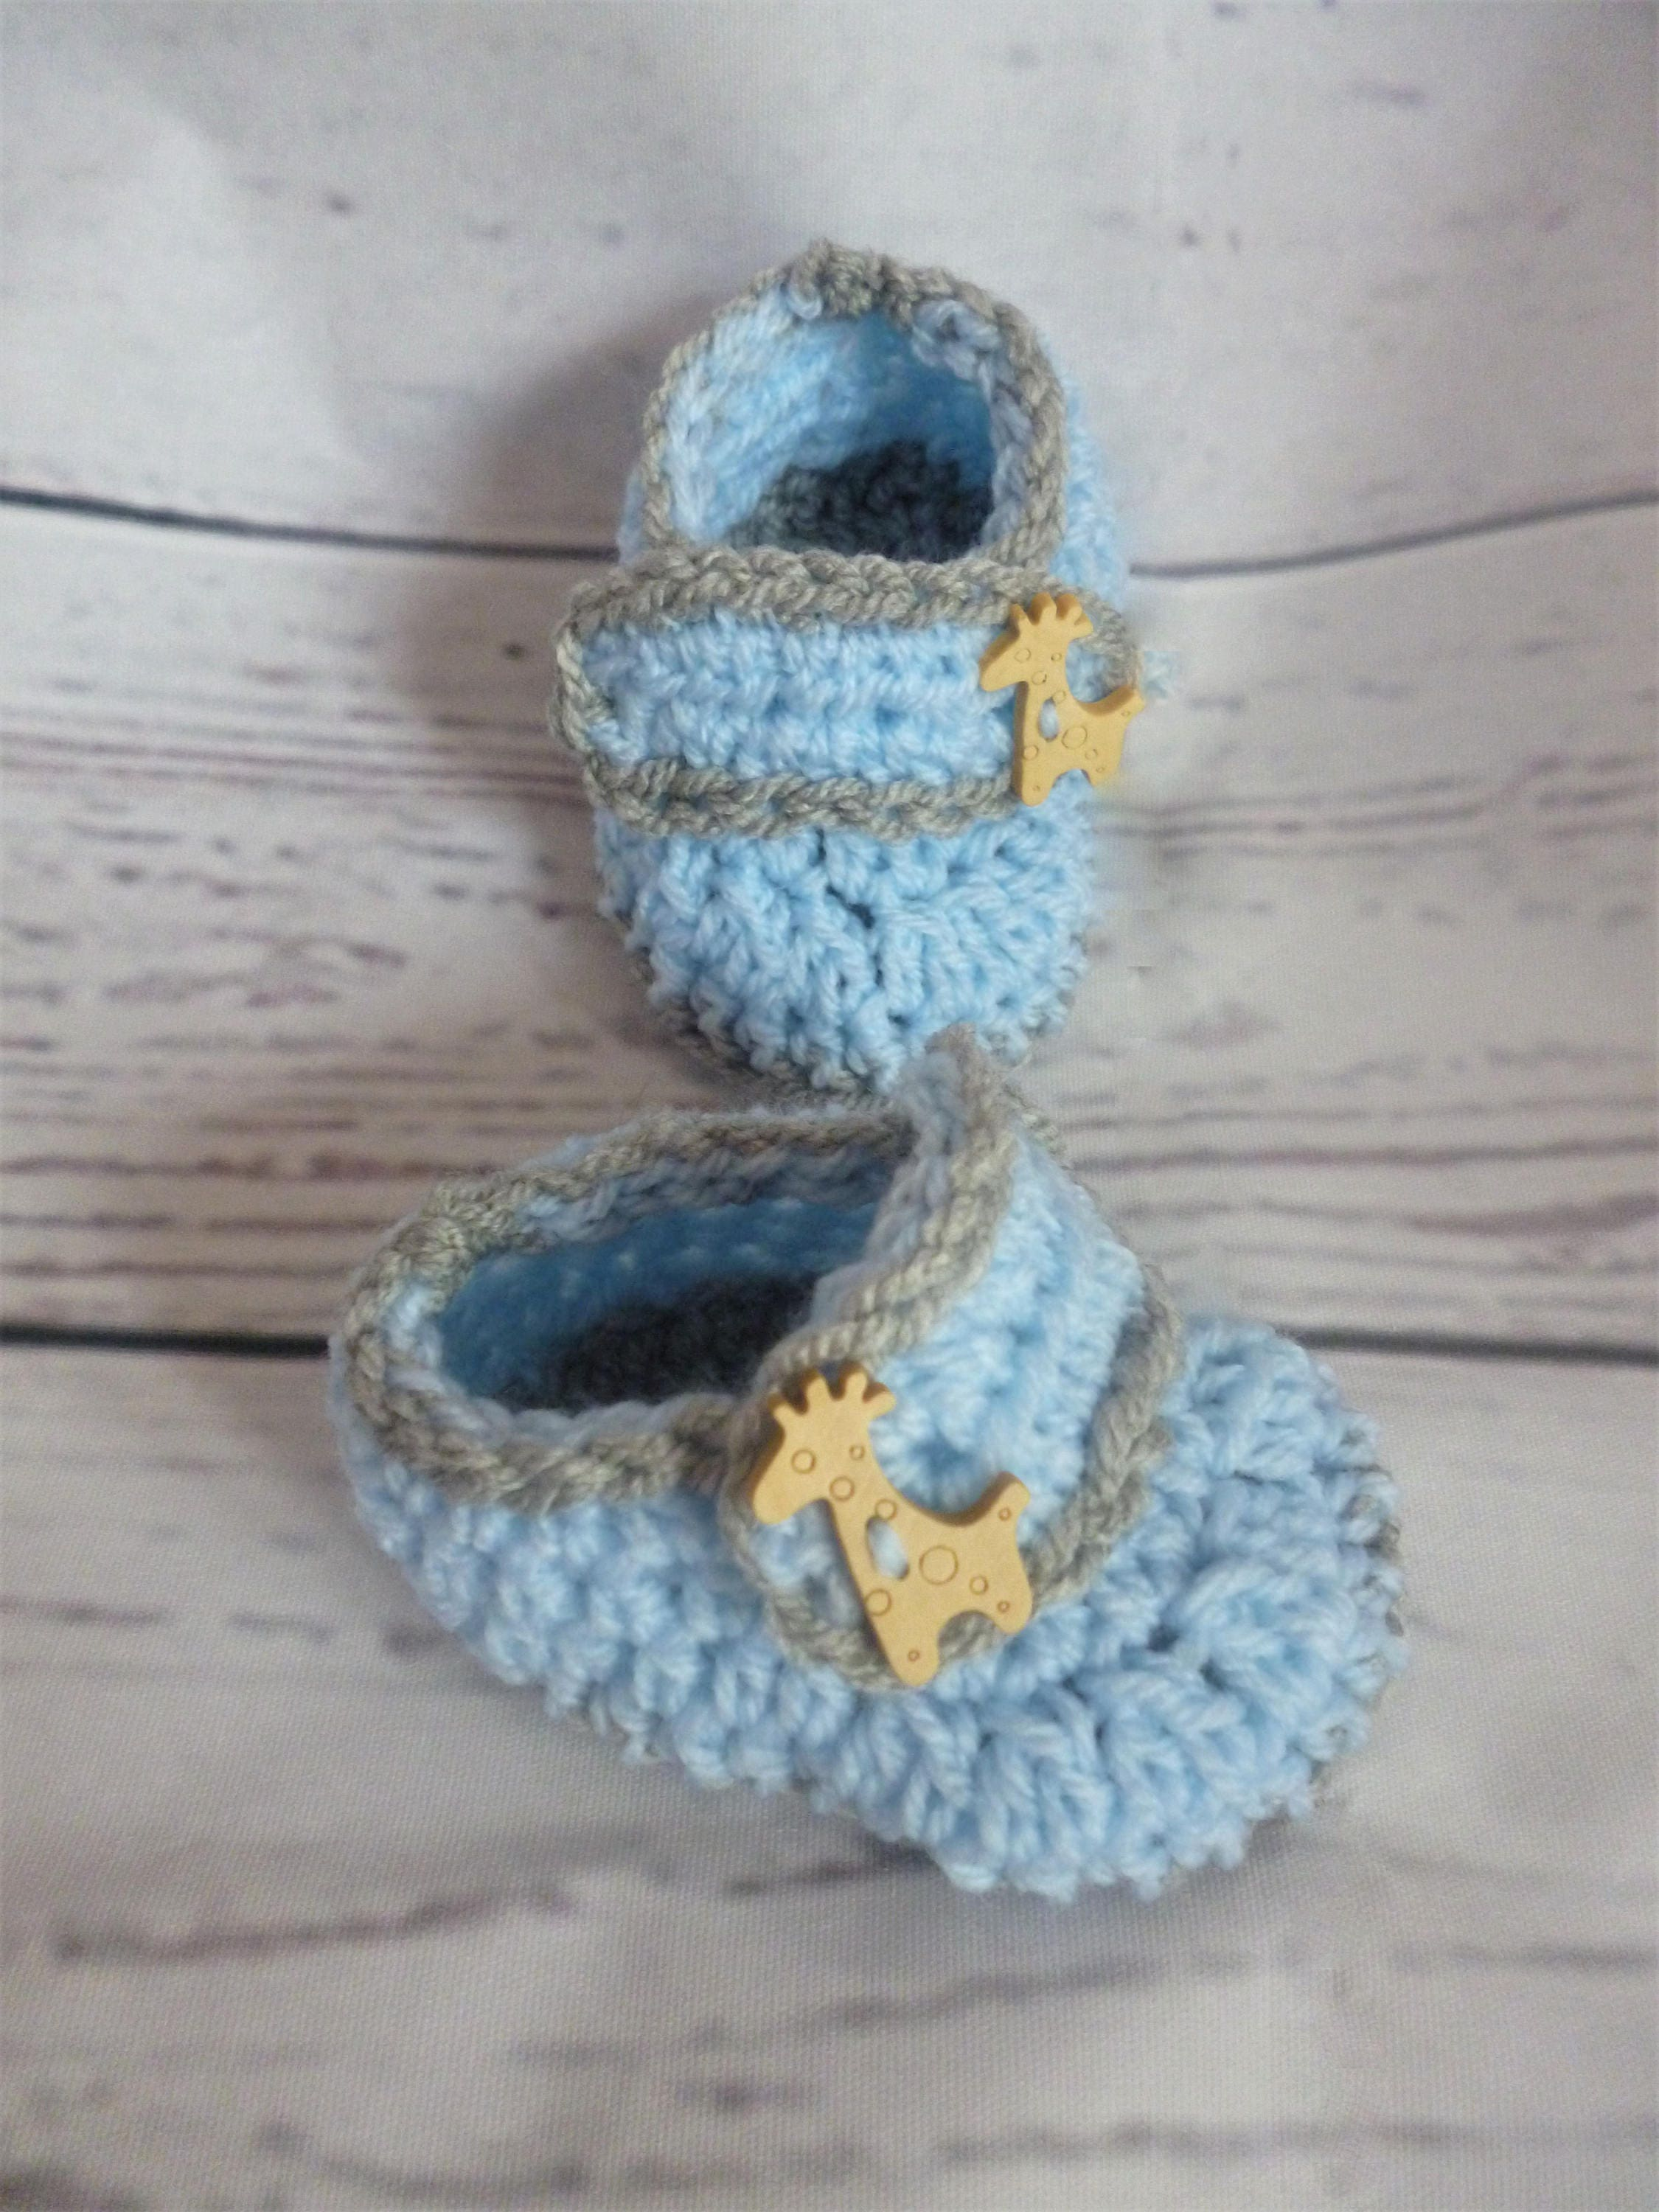 crochet baby shoes blue baby shoes baby boots baby boy baby bootees handmade shoes giraffe shoes knitted shoes baby shower gift